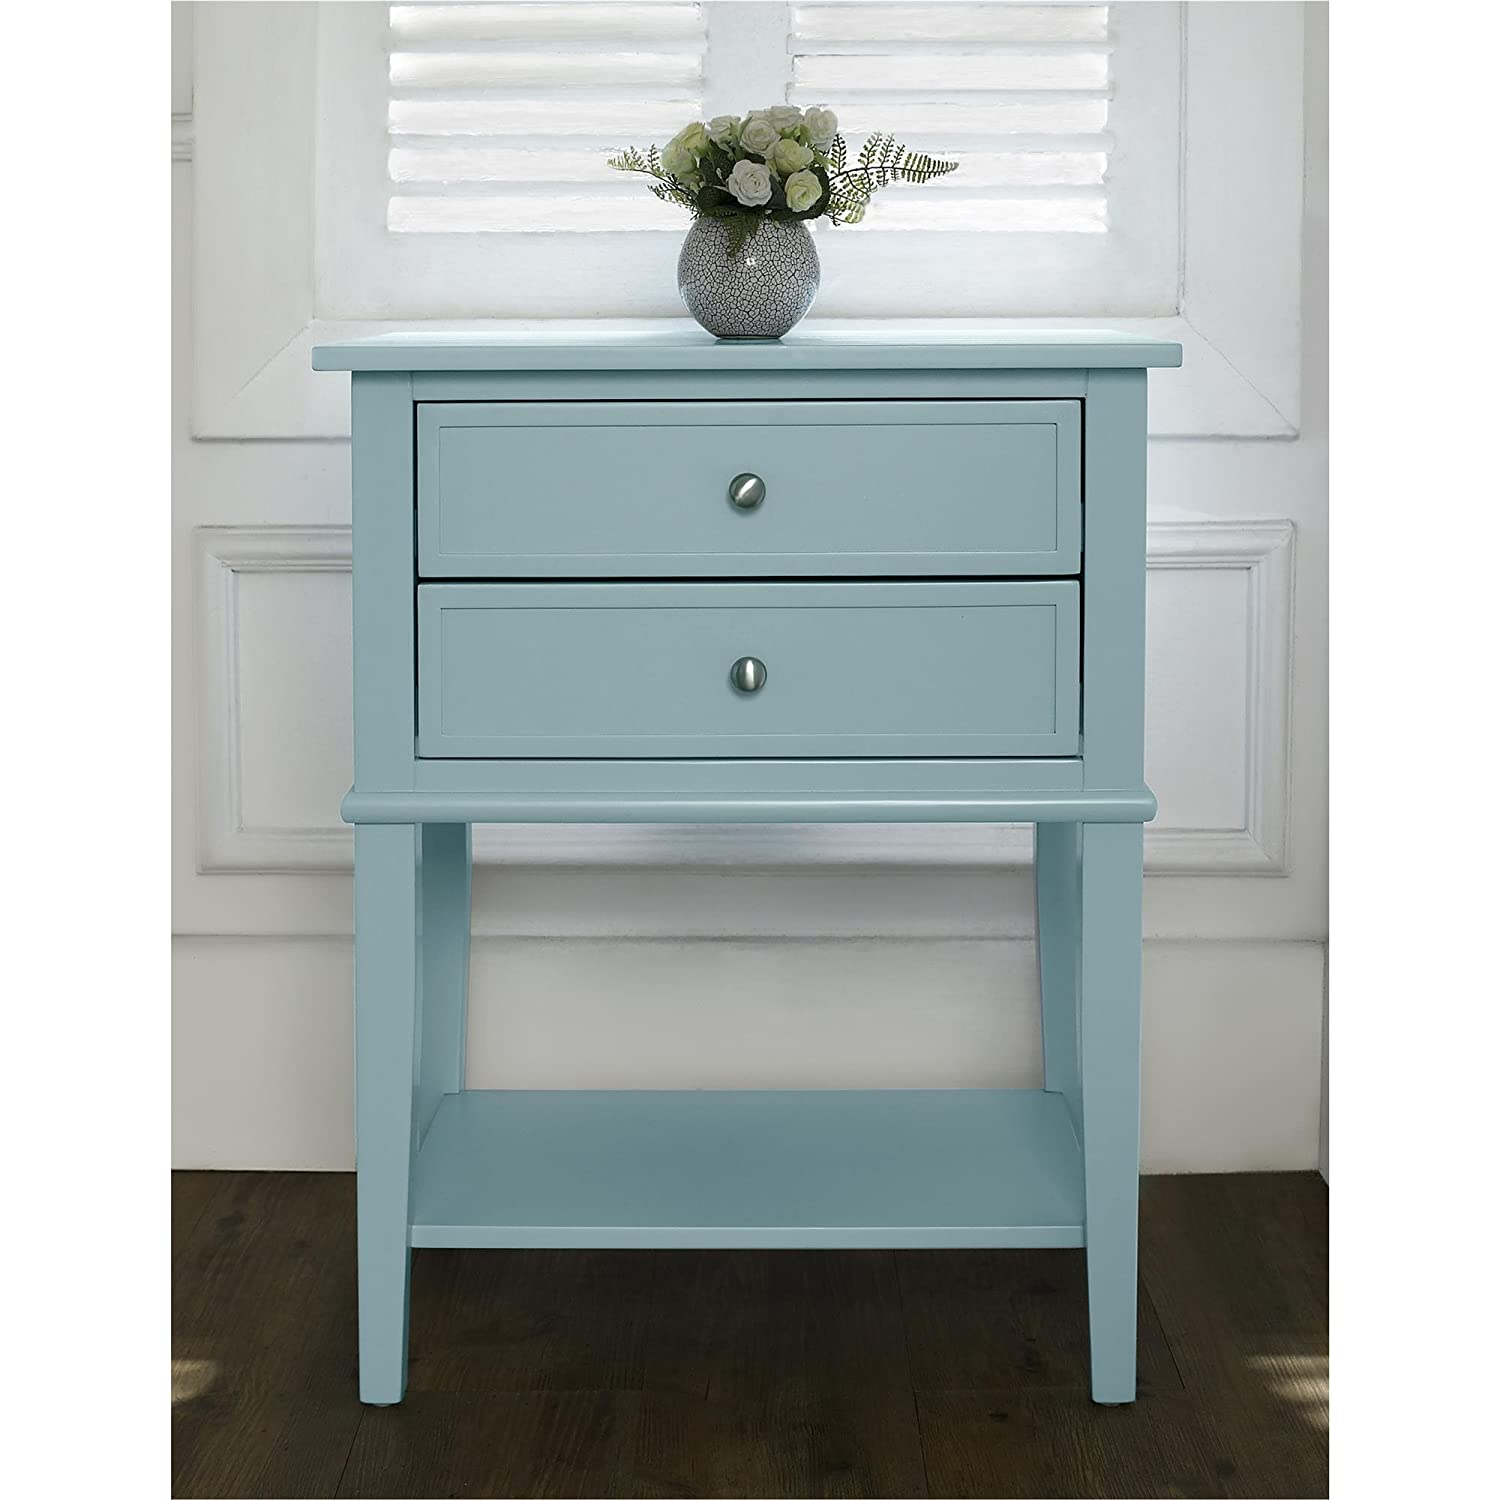 Ameriwood Home 5062396COM Franklin Accent Table 2 Drawers, Blue